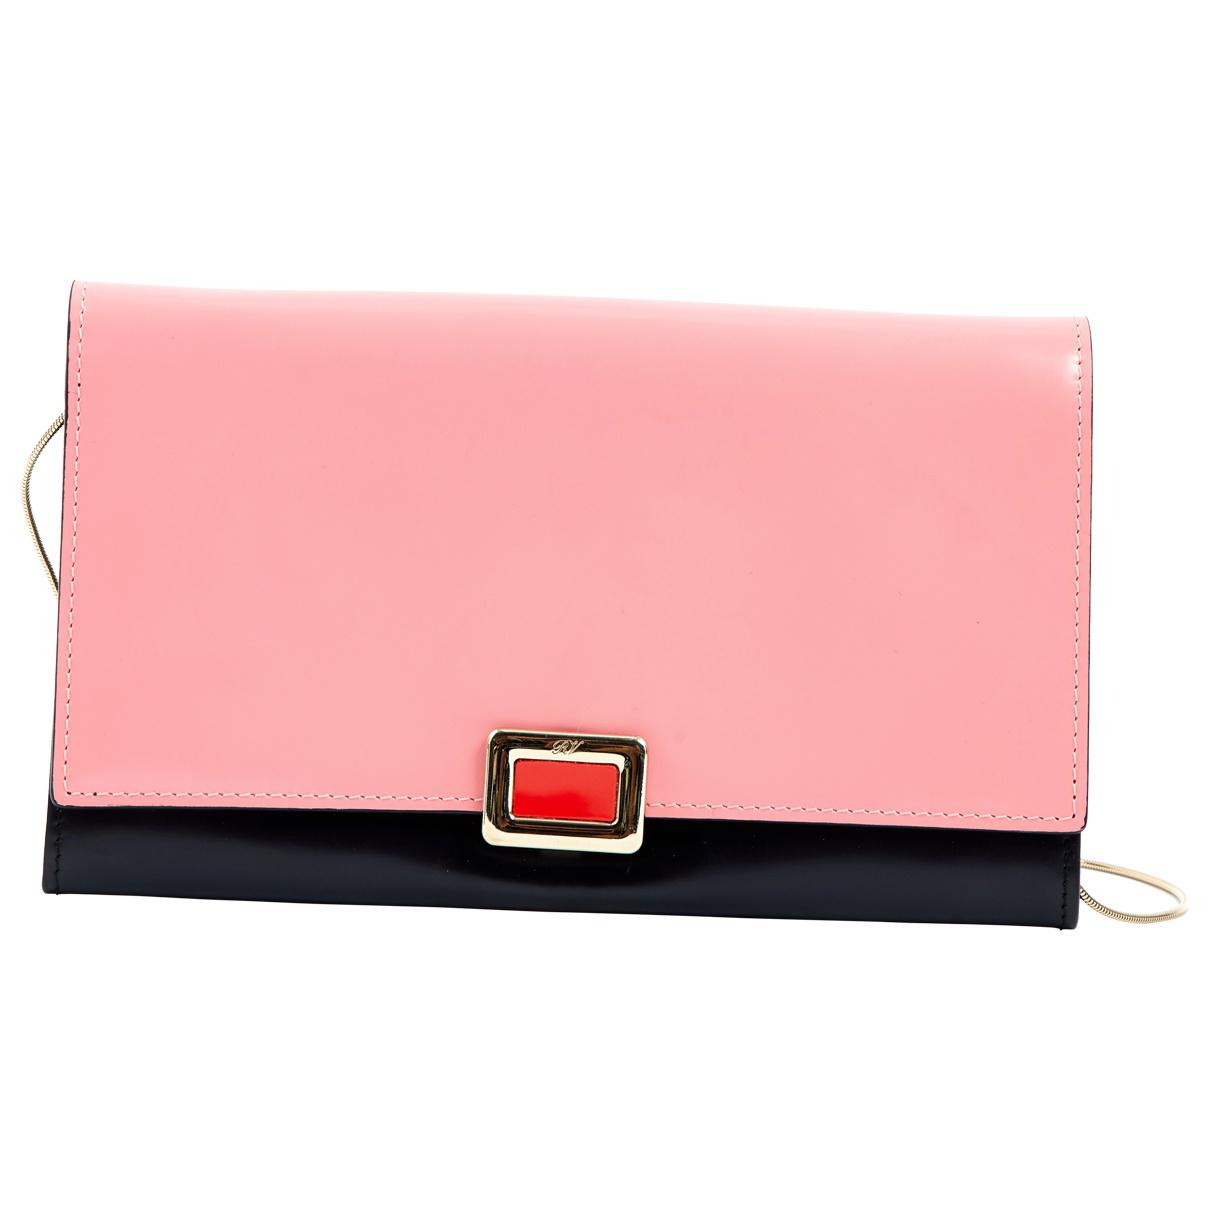 Roger Vivier Pre-owned - Clutch bag KoLRCNP